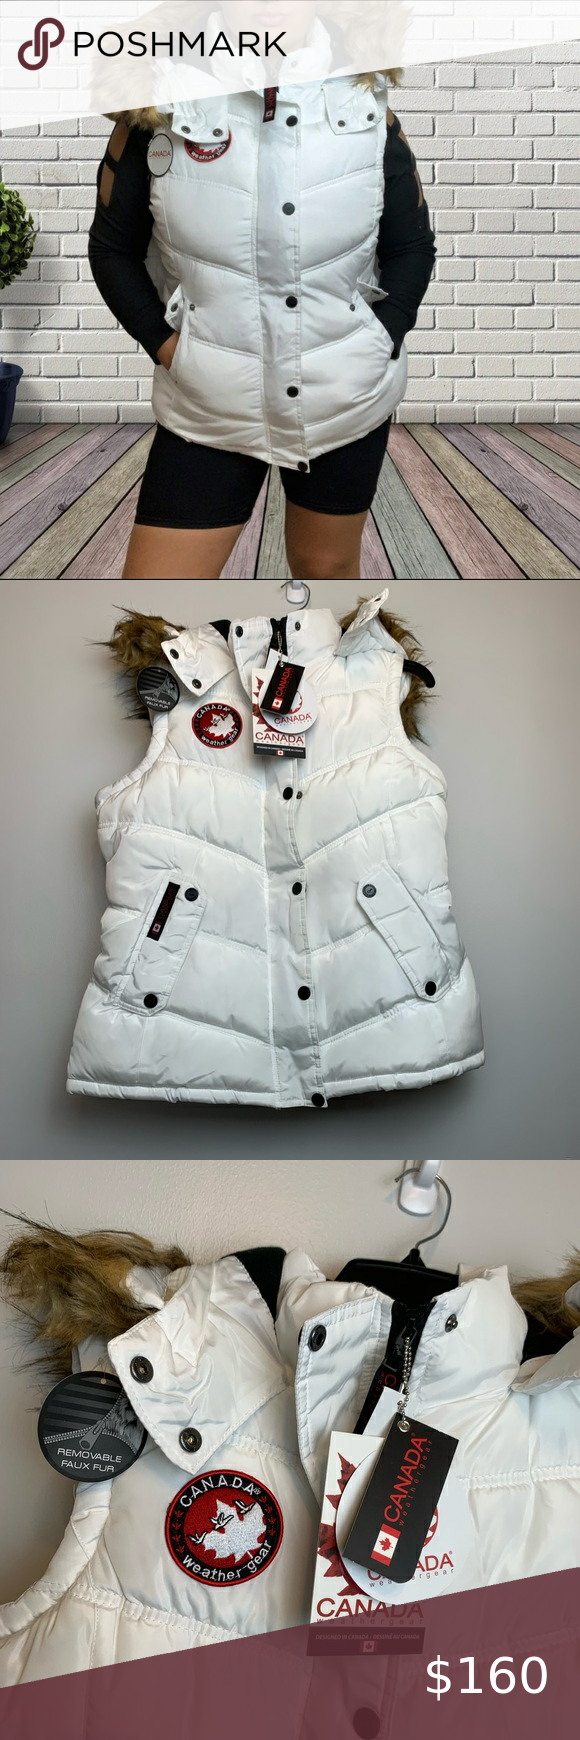 Nwt Canada Weather Gear White Puffer Vest Size L White Puffer Vest Clothes Design Jackets For Women [ 1740 x 580 Pixel ]